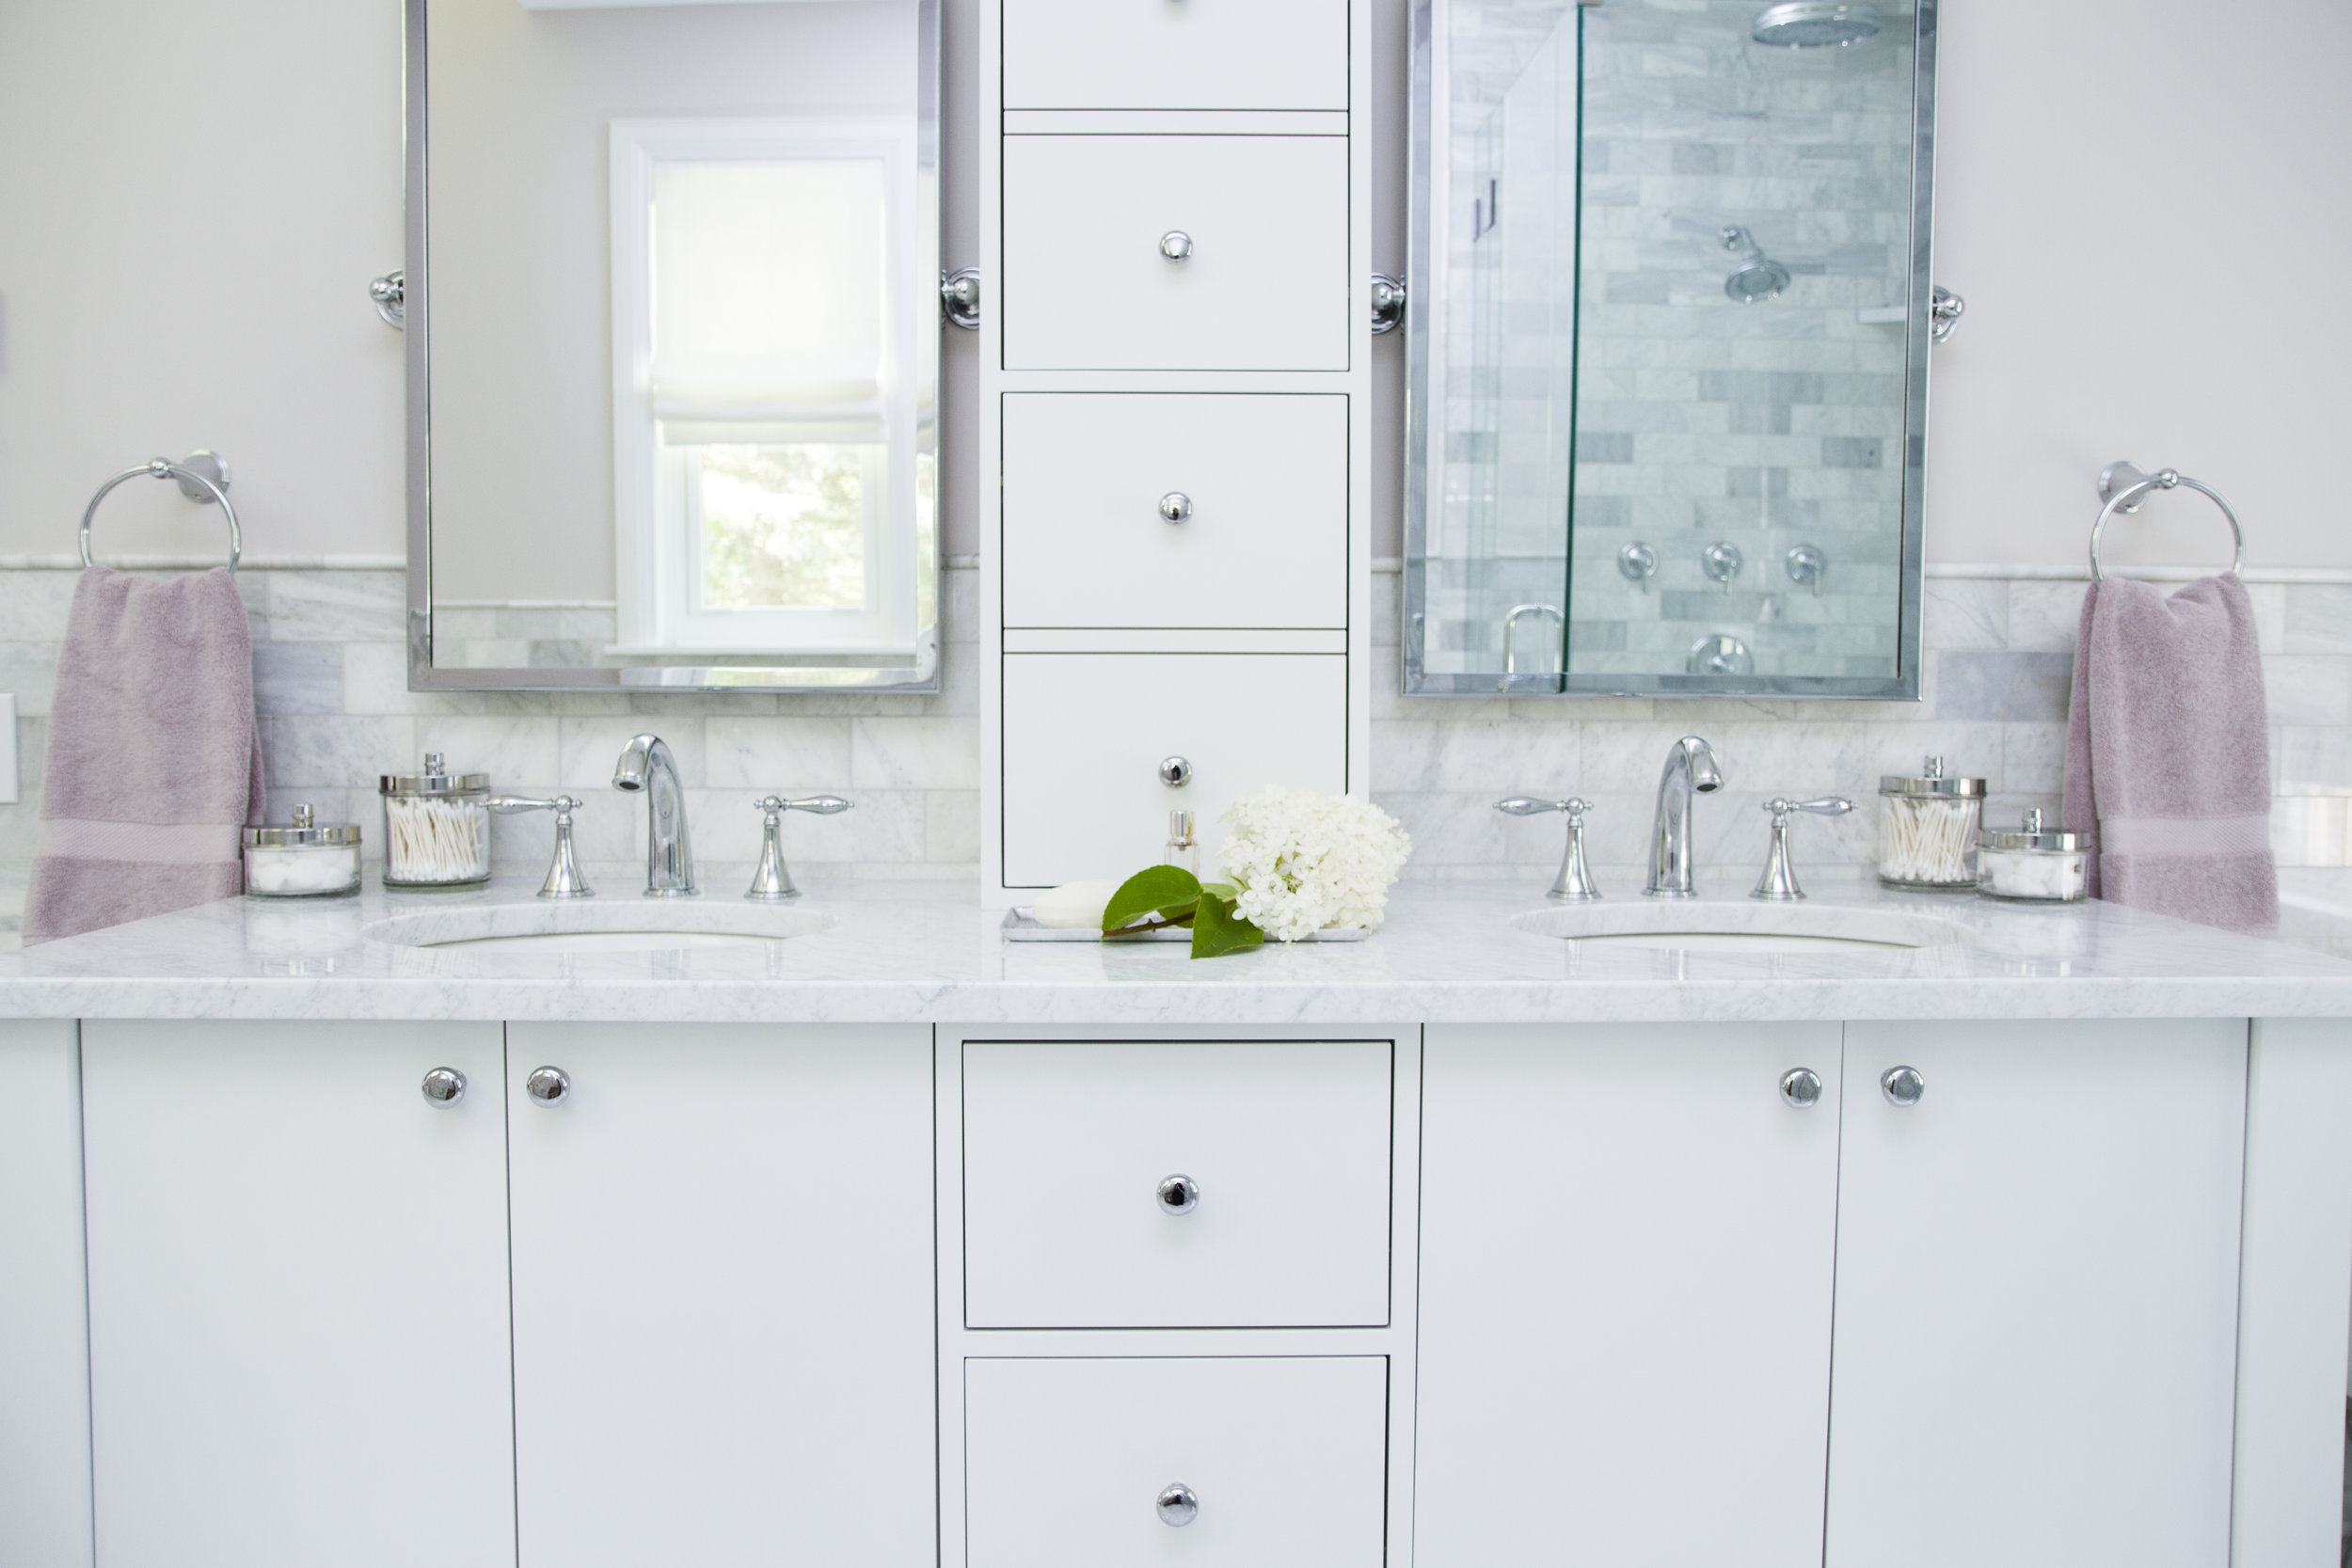 This bathroom vanity is similar to some of the others on the market, but there are a few distinct differences that we were able to include by going custom. The space for the vanity was a little larger than standard, so we made it fit the space better. Additionally, we hid some outlets inside those top cabinets, which means no ugly outlets or holes in the beautiful marble! One little trick? Those top cabinets were built to look like the drawers below, but they are actually cabinet doors that swing open. By making them look like drawers, we give the whole piece a very consistent and streamlined look.